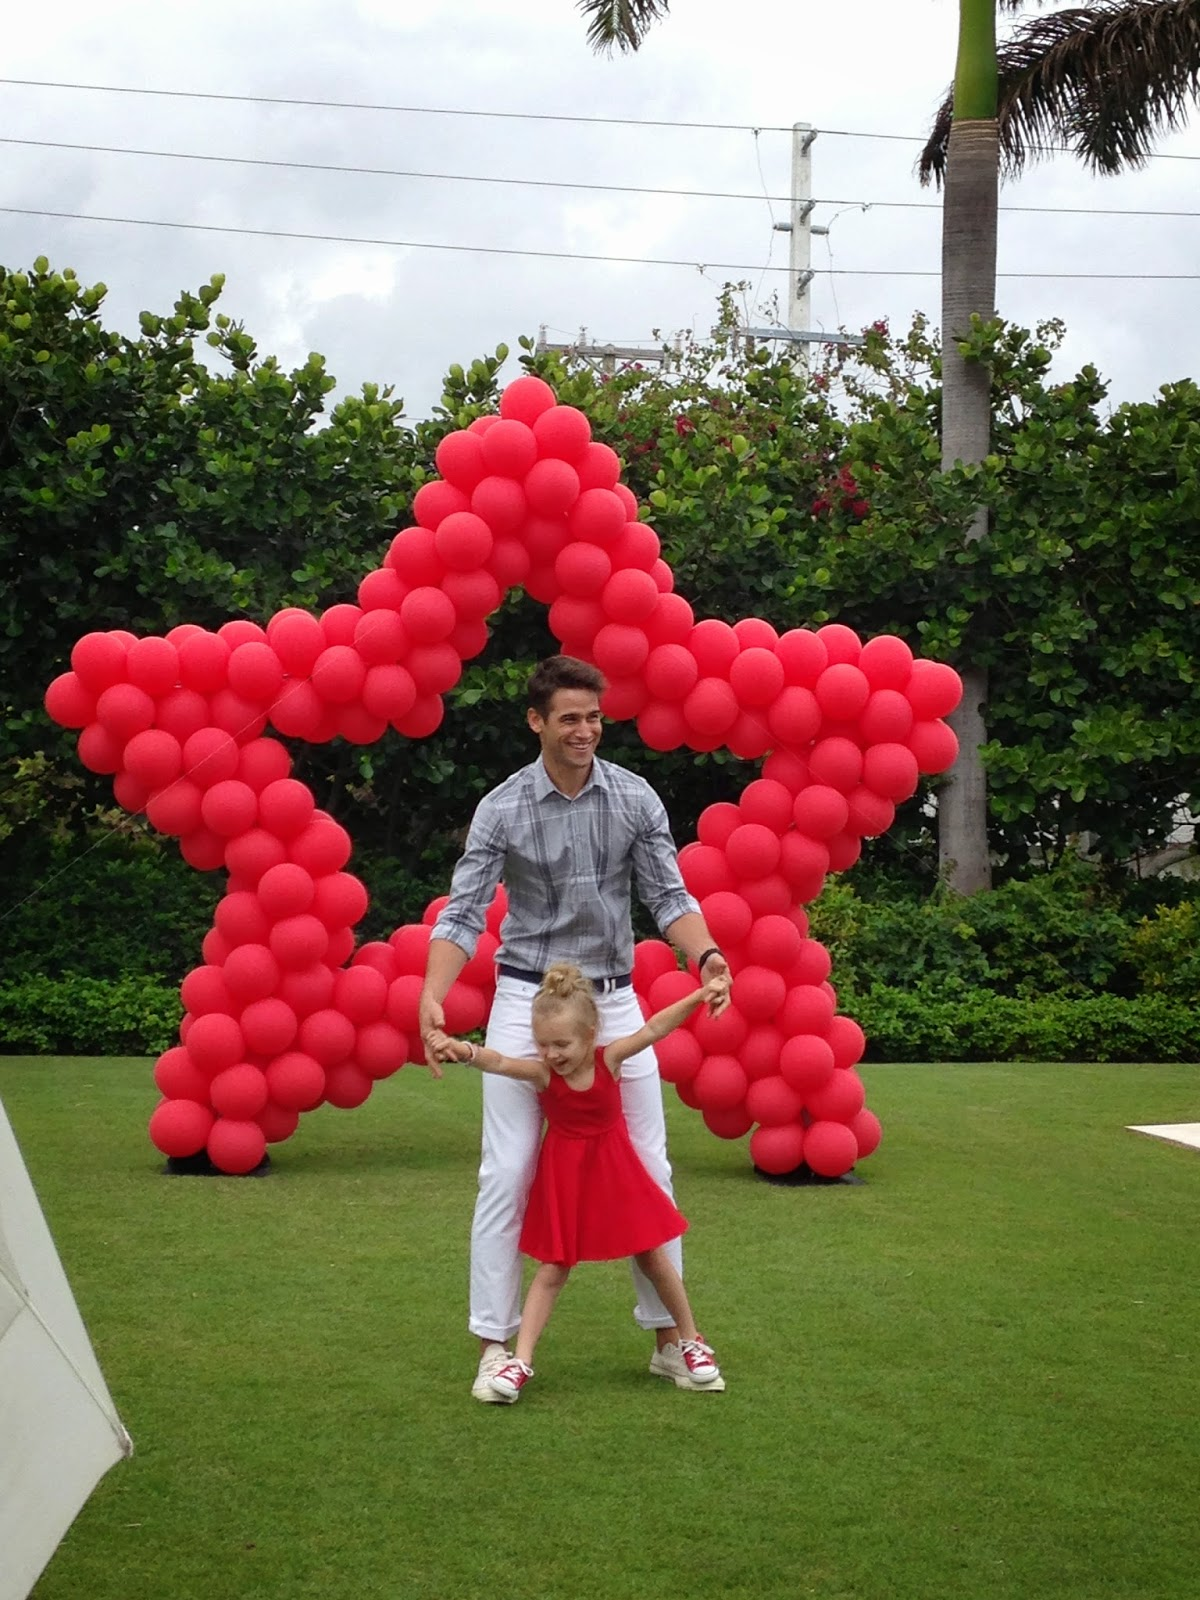 Red star shape by balloons for photoshoot Macy's magazine